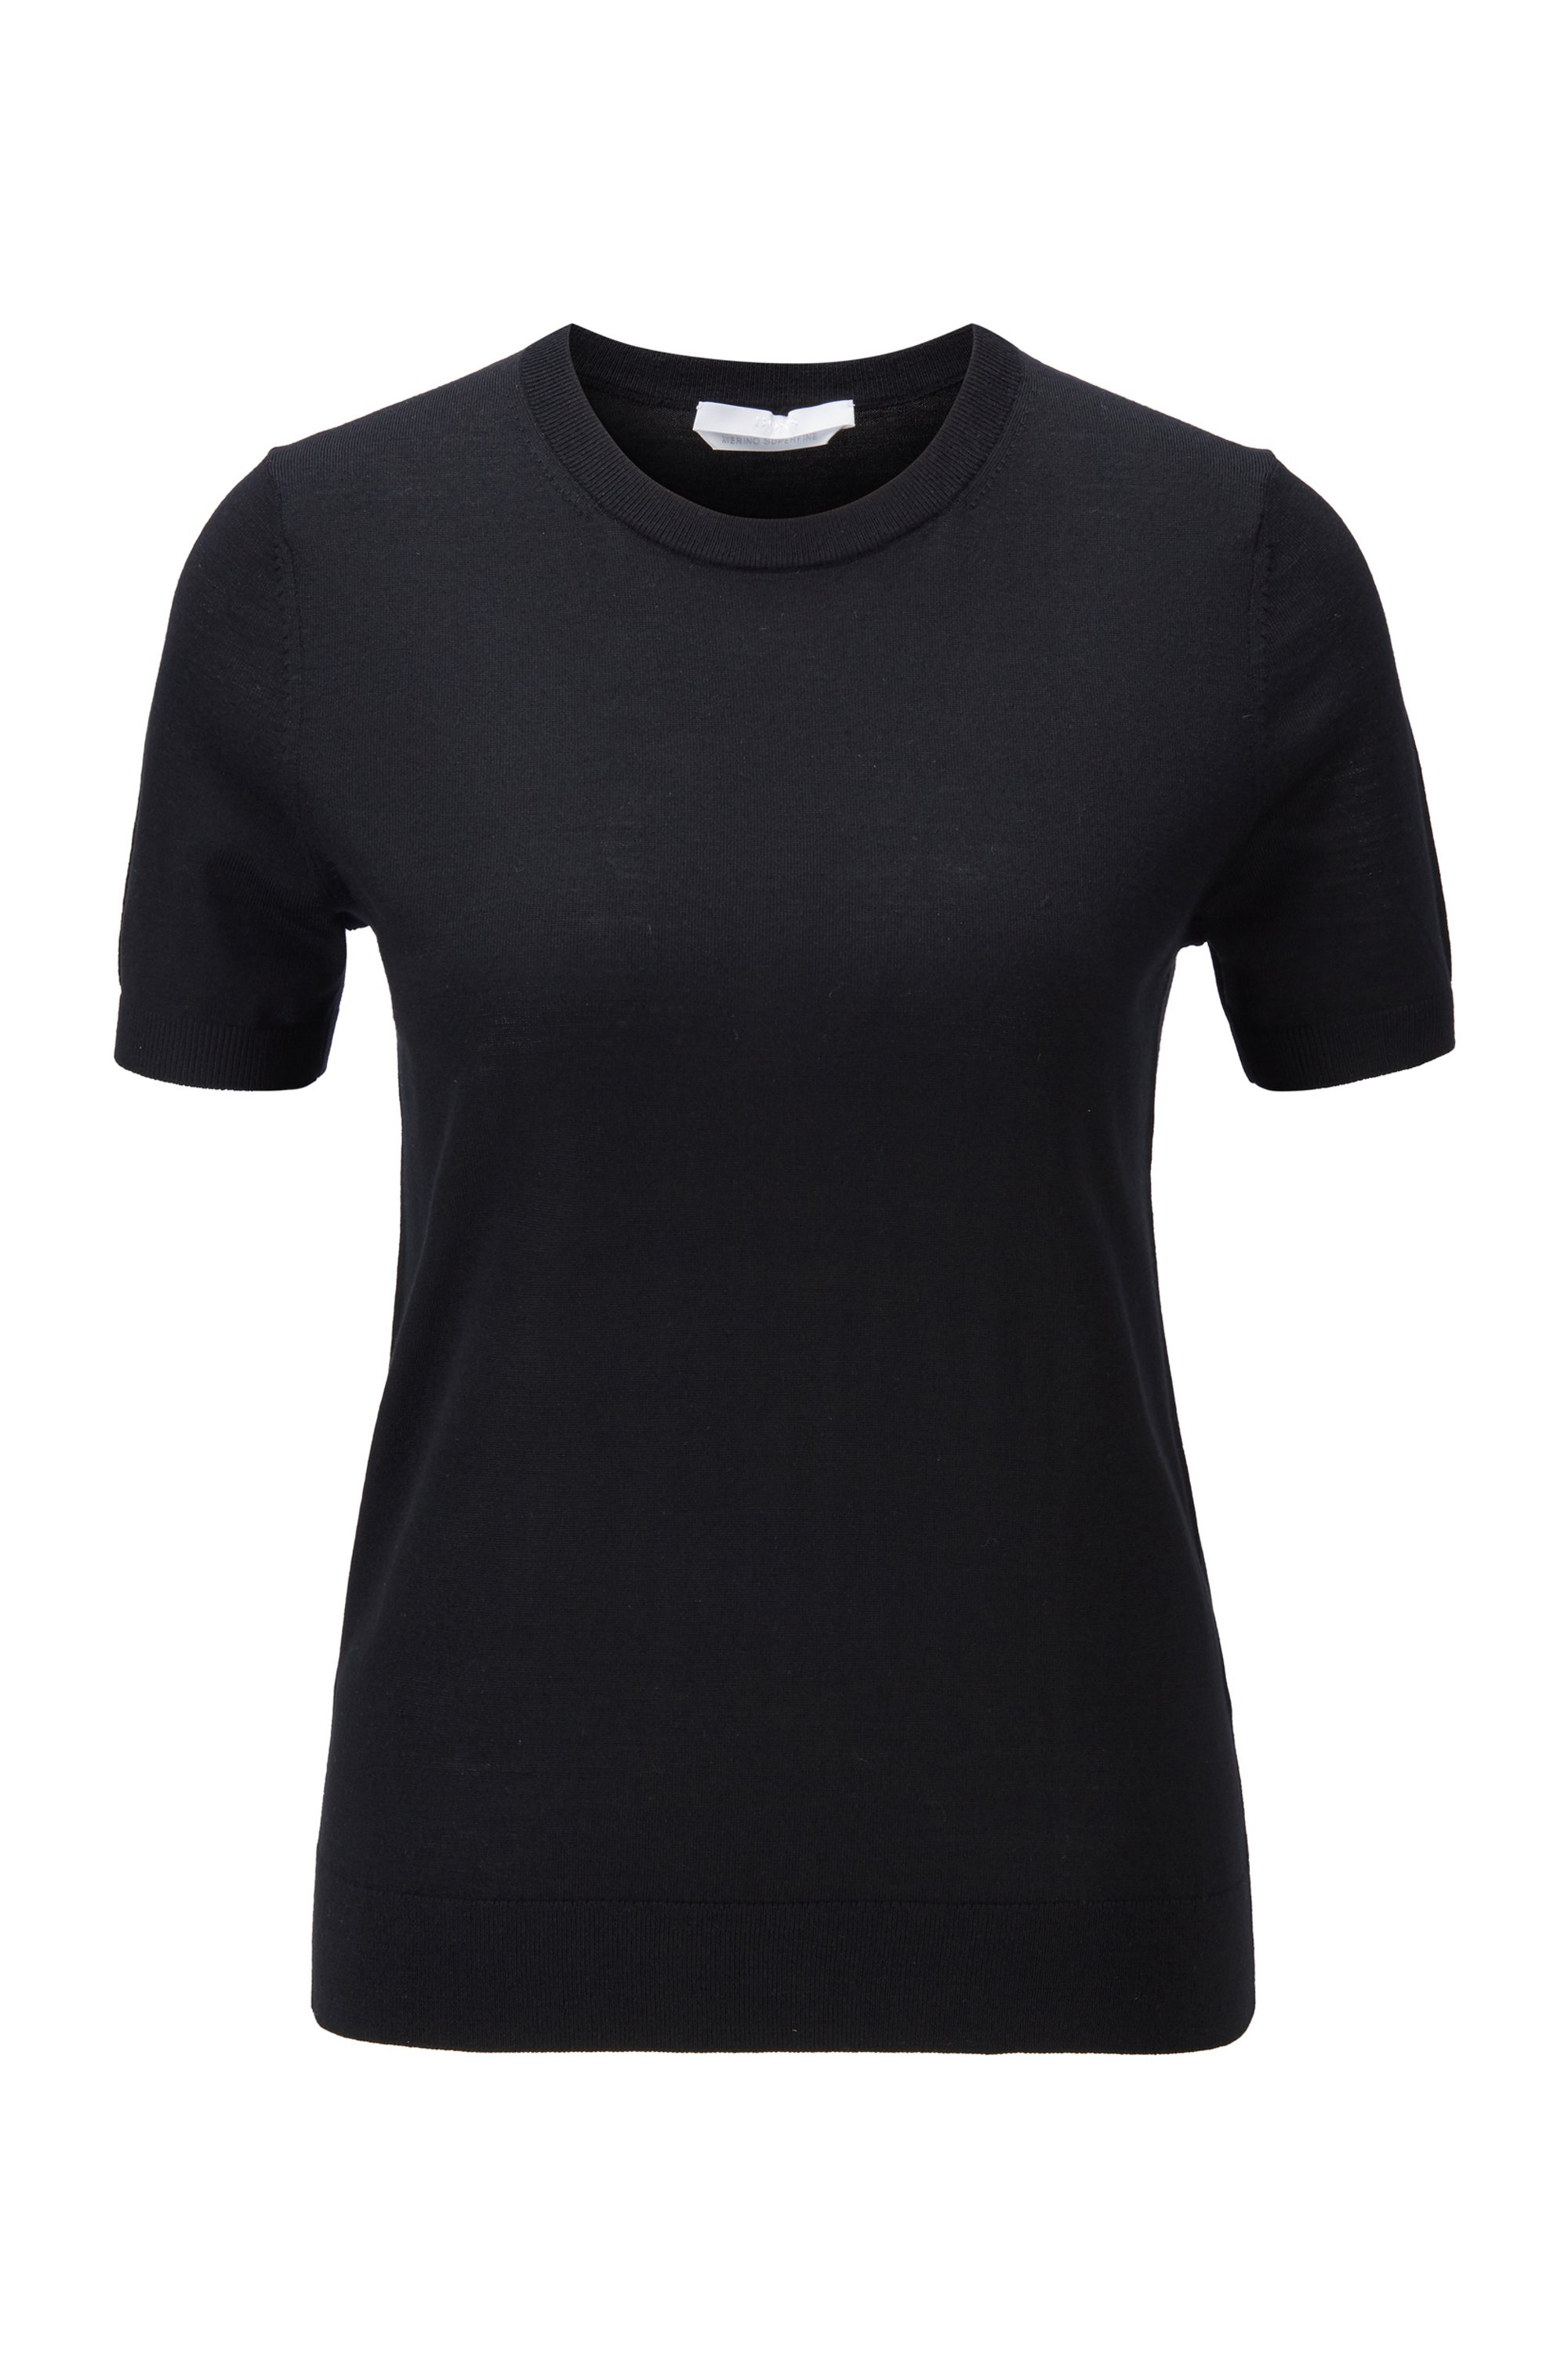 Short-sleeved sweater in virgin wool, Black